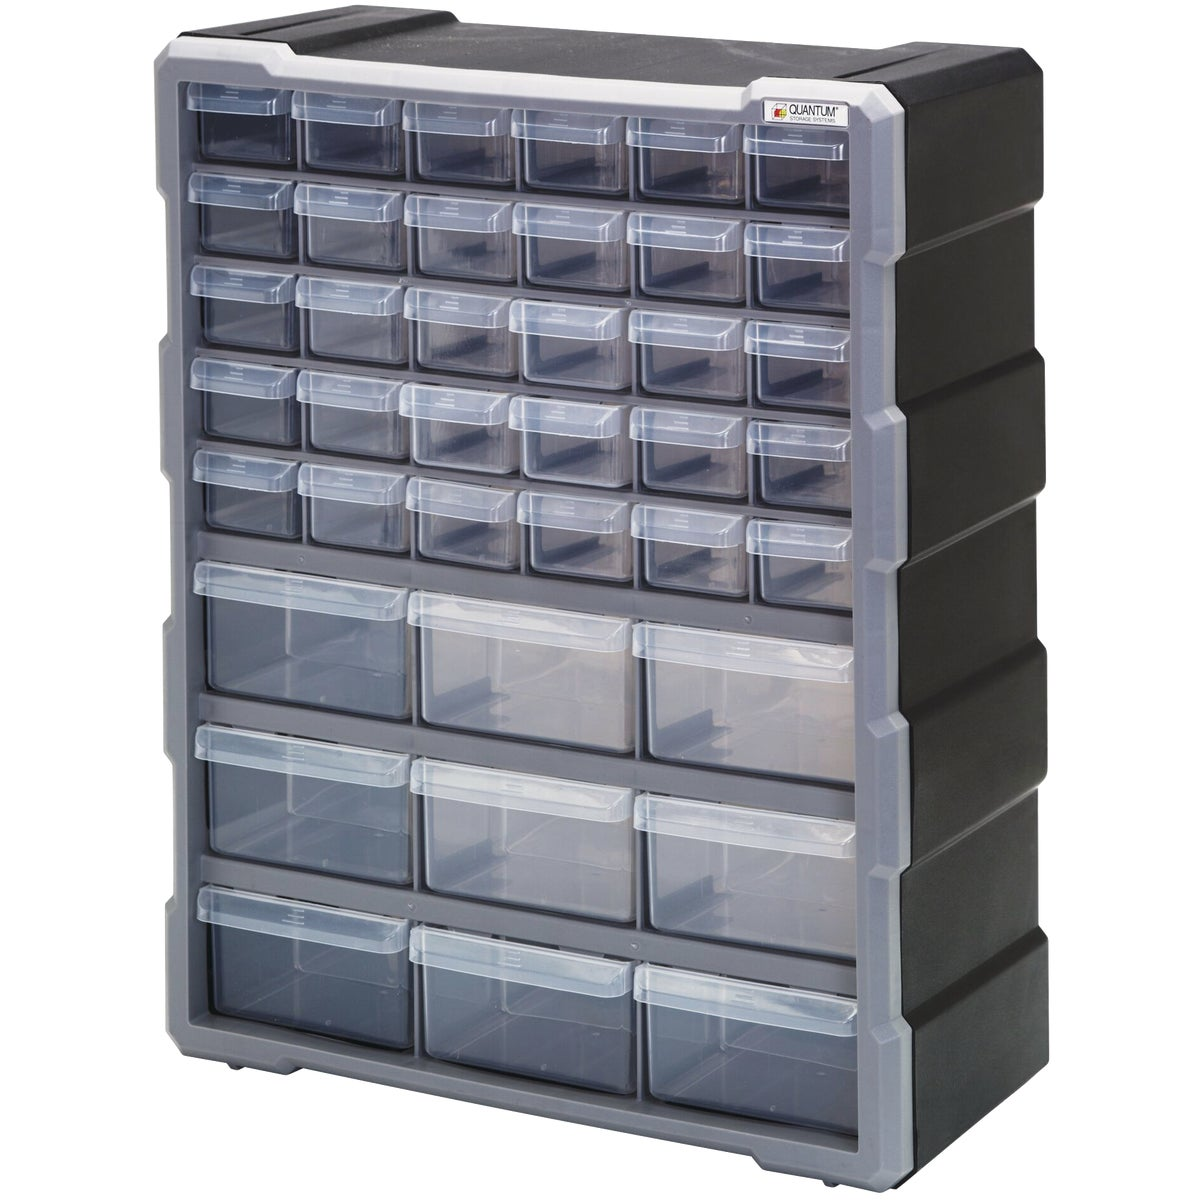 39 DRWR STORAGE CABINET - DS-39 by Stack On Products